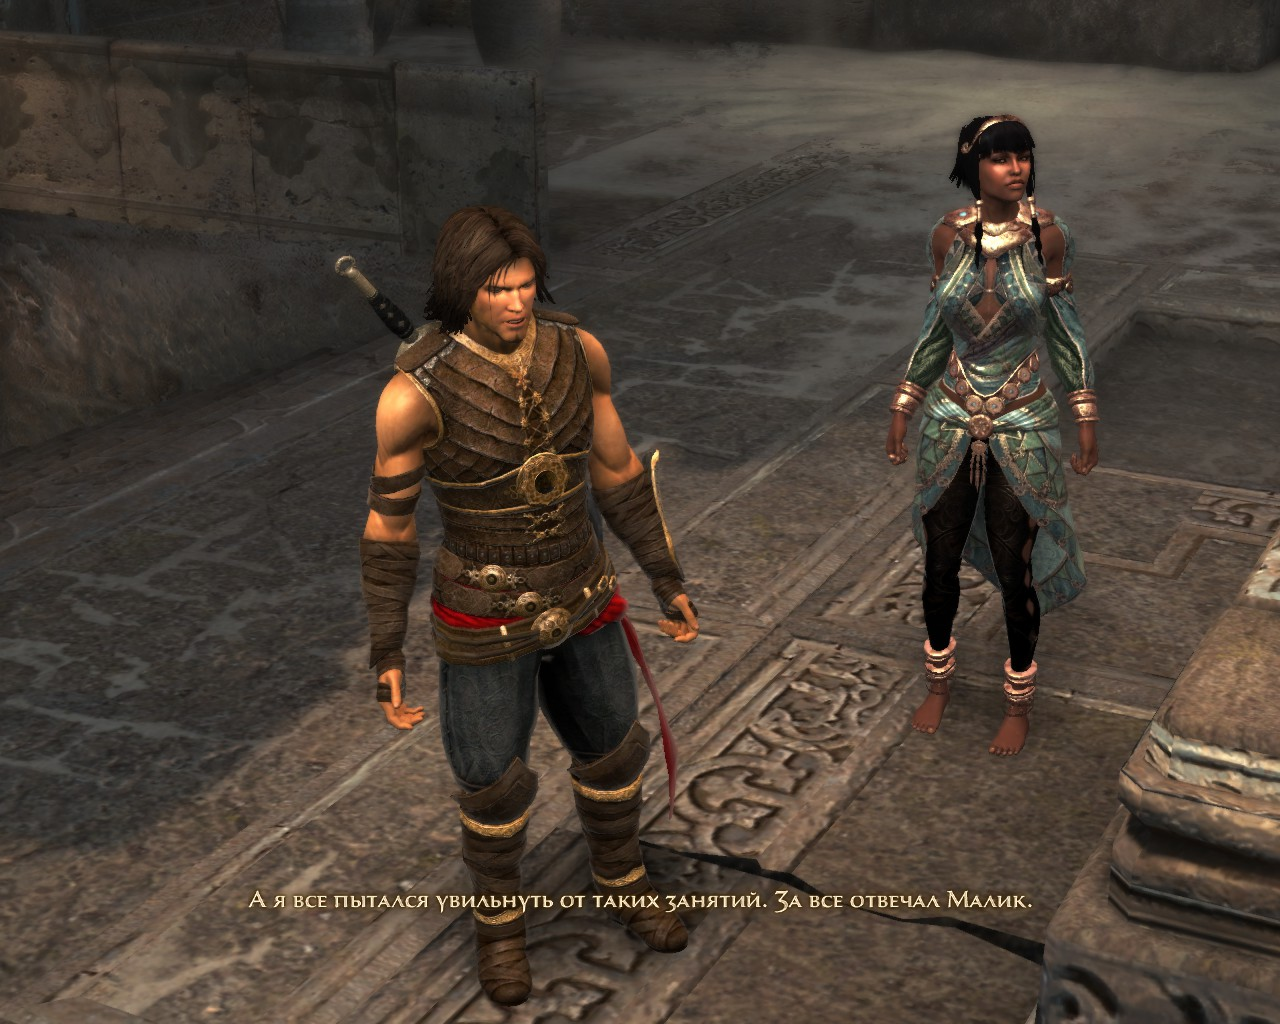 Prince of Persia 2014-06-03 23-39-36-26.jpg - Prince of Persia: The Forgotten Sands